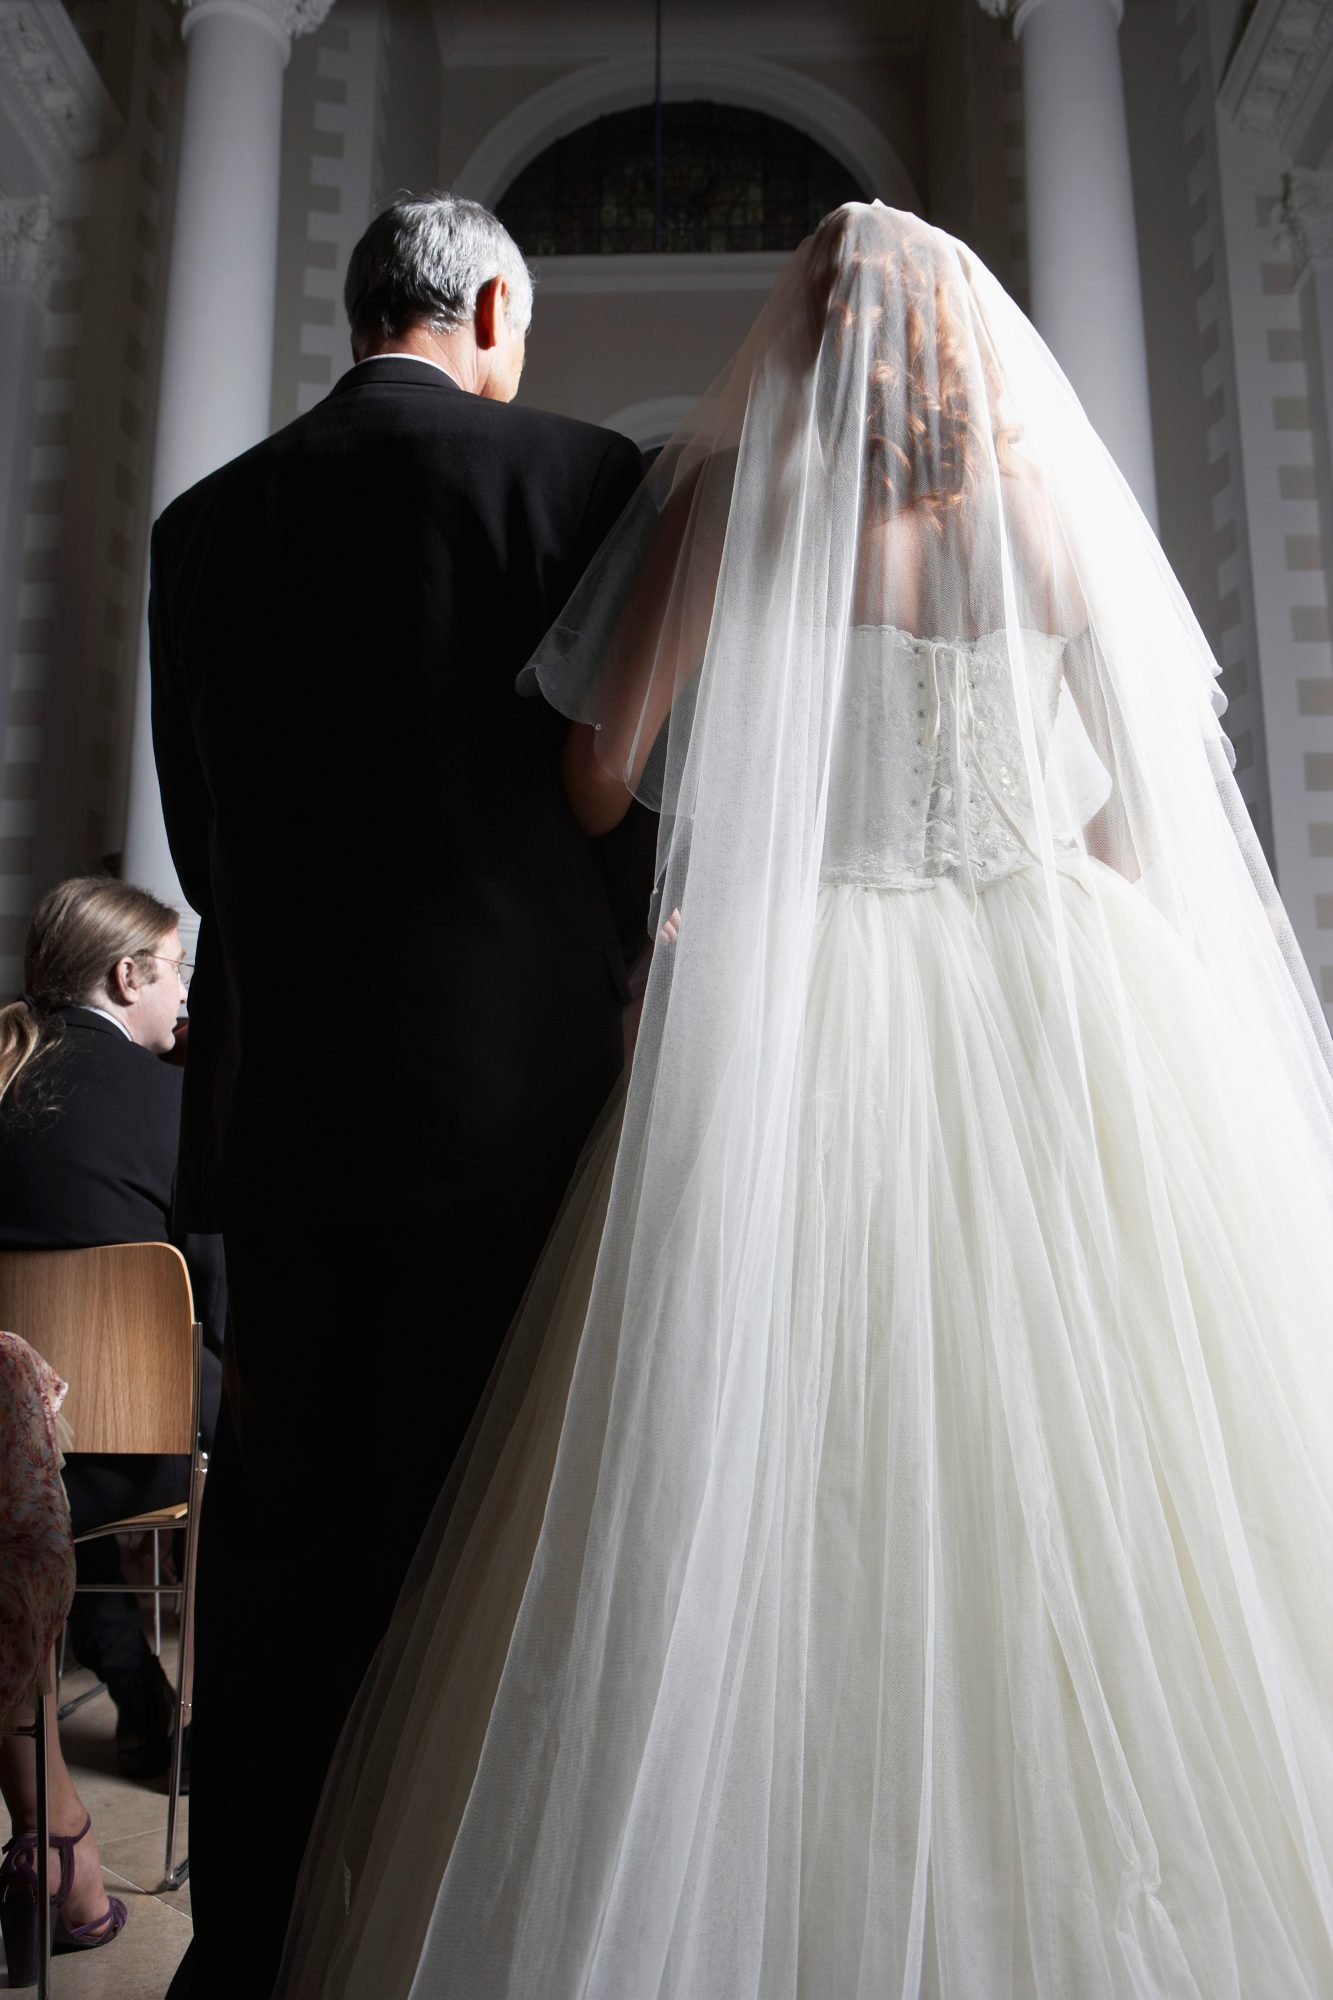 I Hate What My Wedding Did To Me